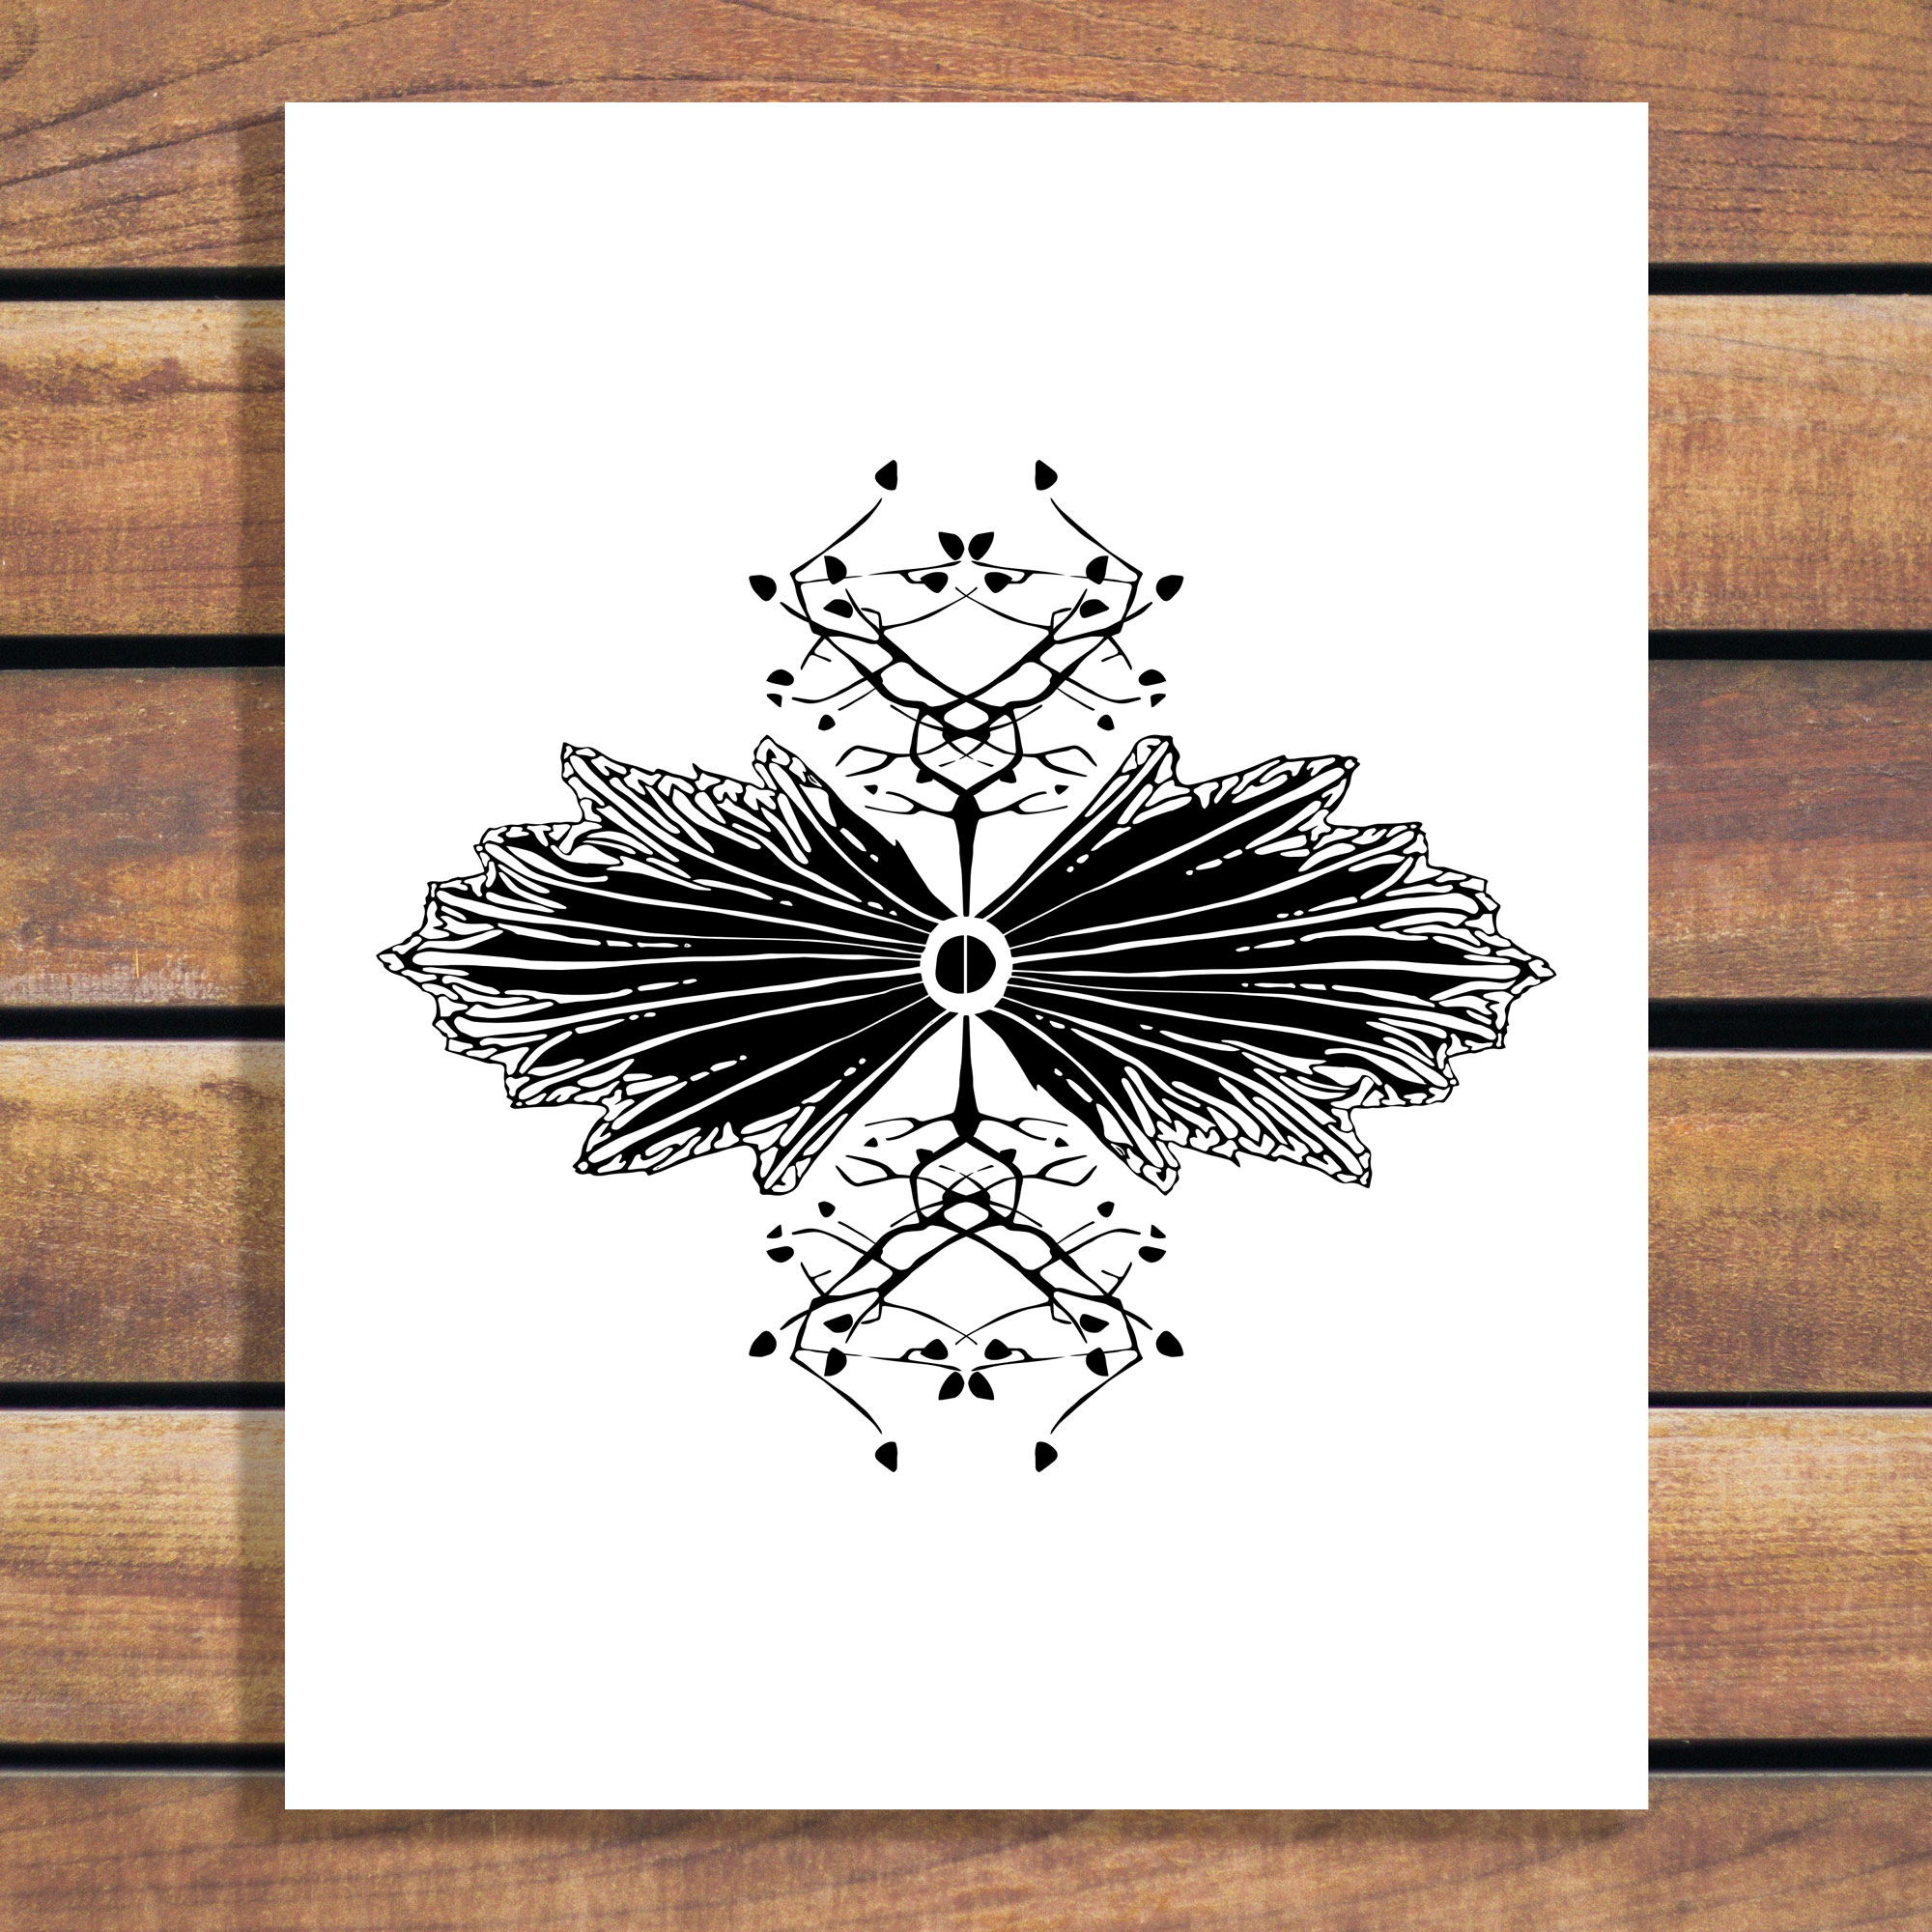 Brina Schenk Illustration - Organic Symmetry Black and White illustration art print